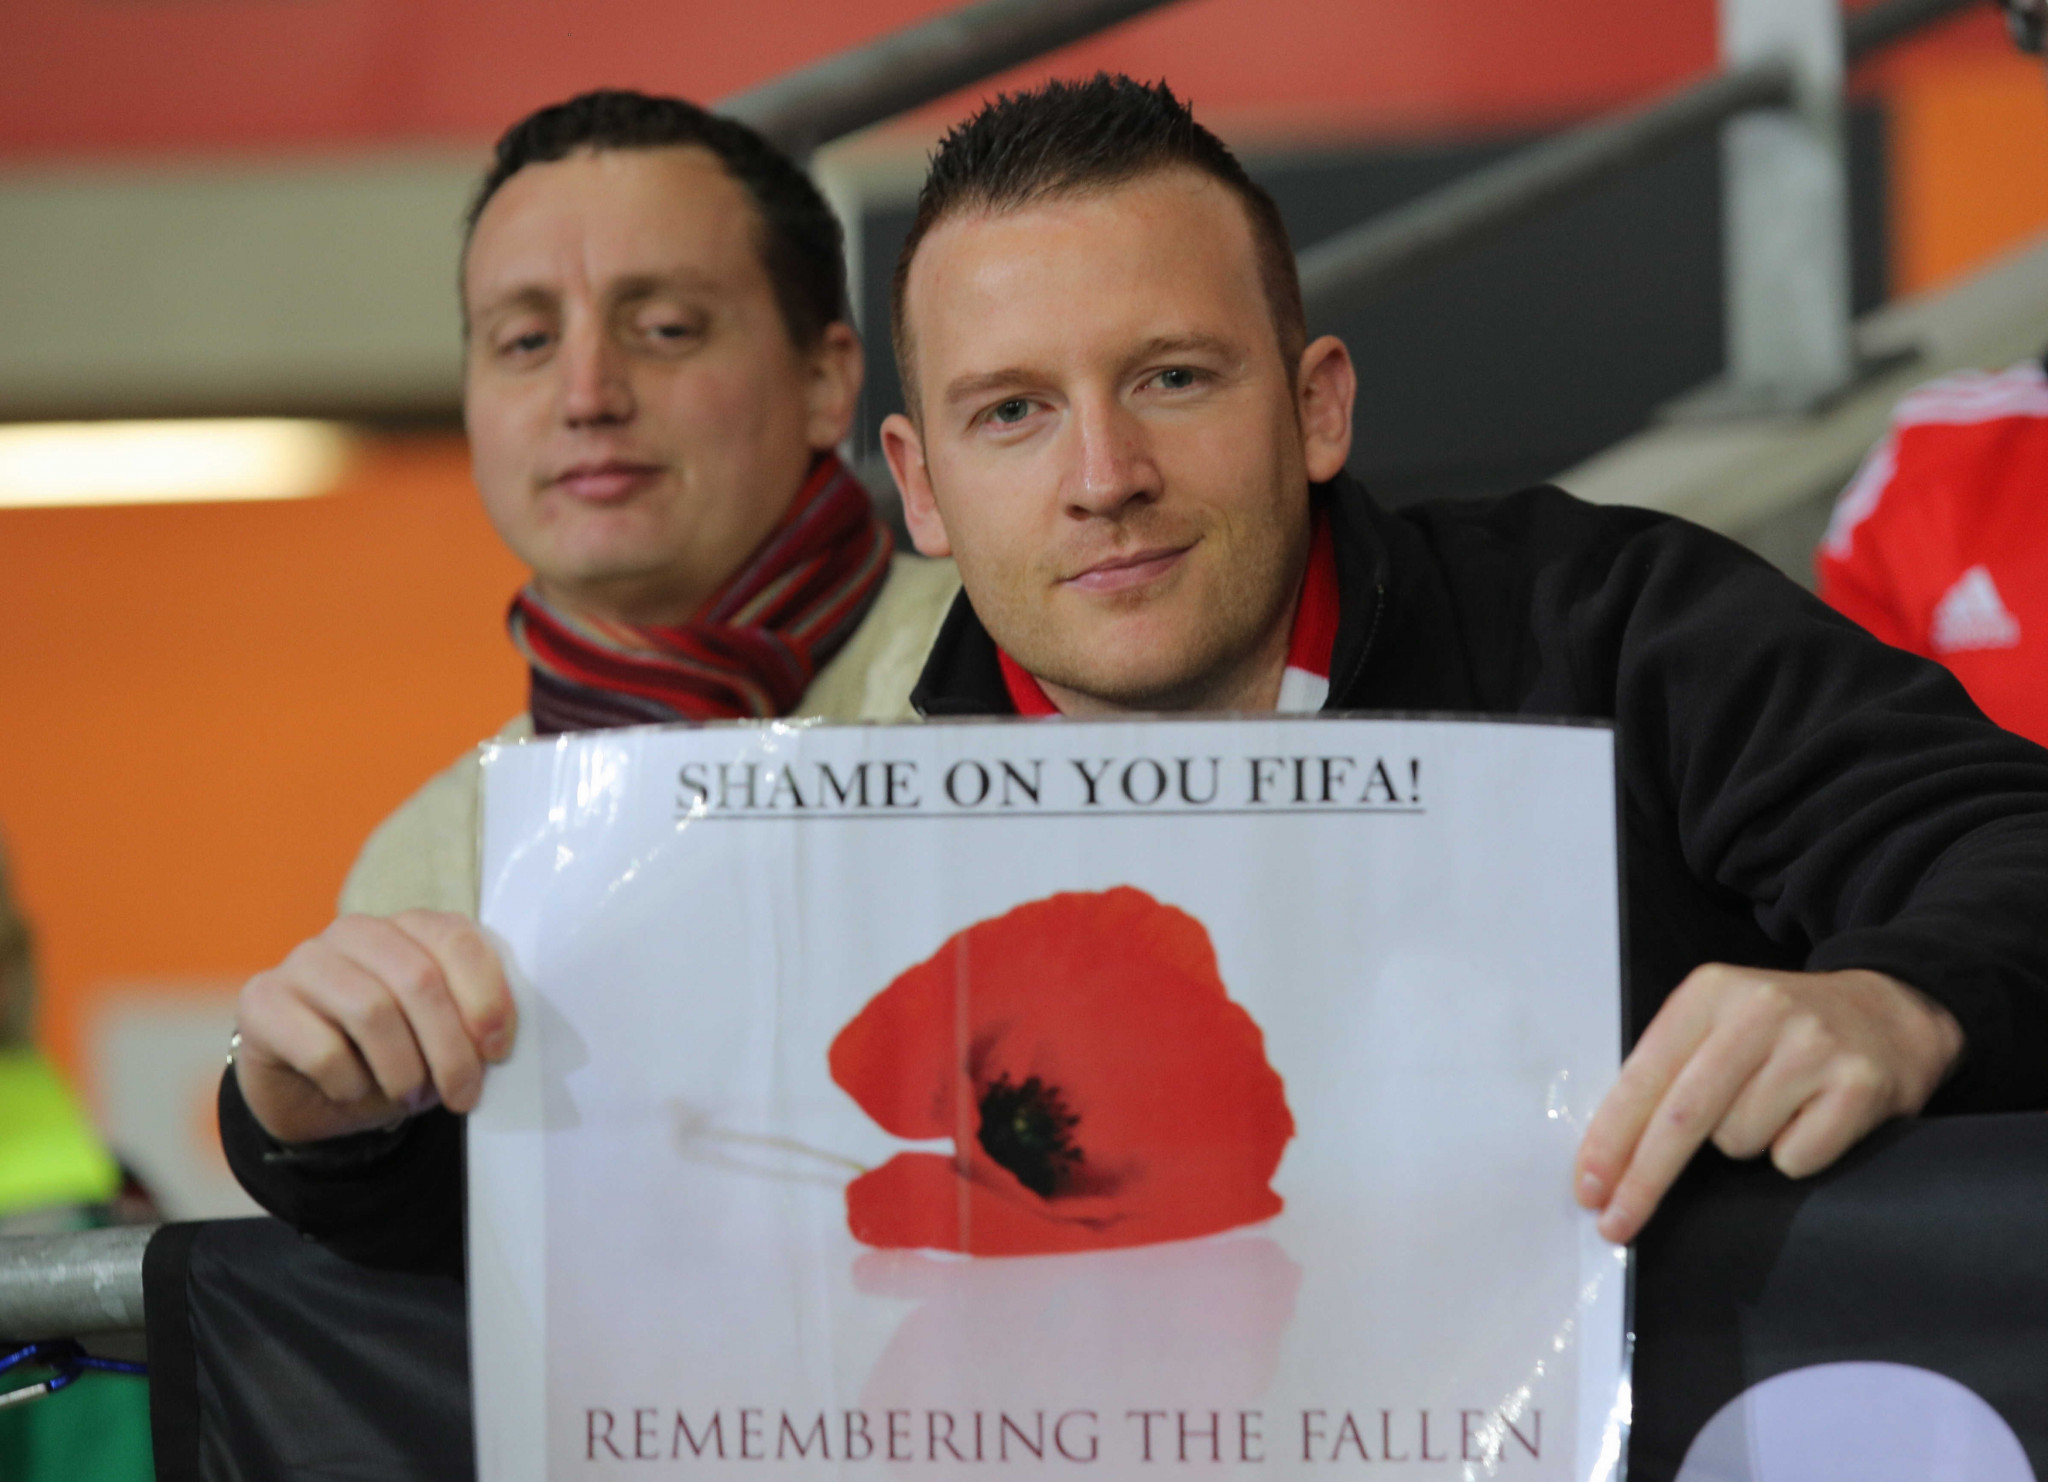 There was anger among British football fans at FIFA's claim the poppy was a political symbol ©Getty Images